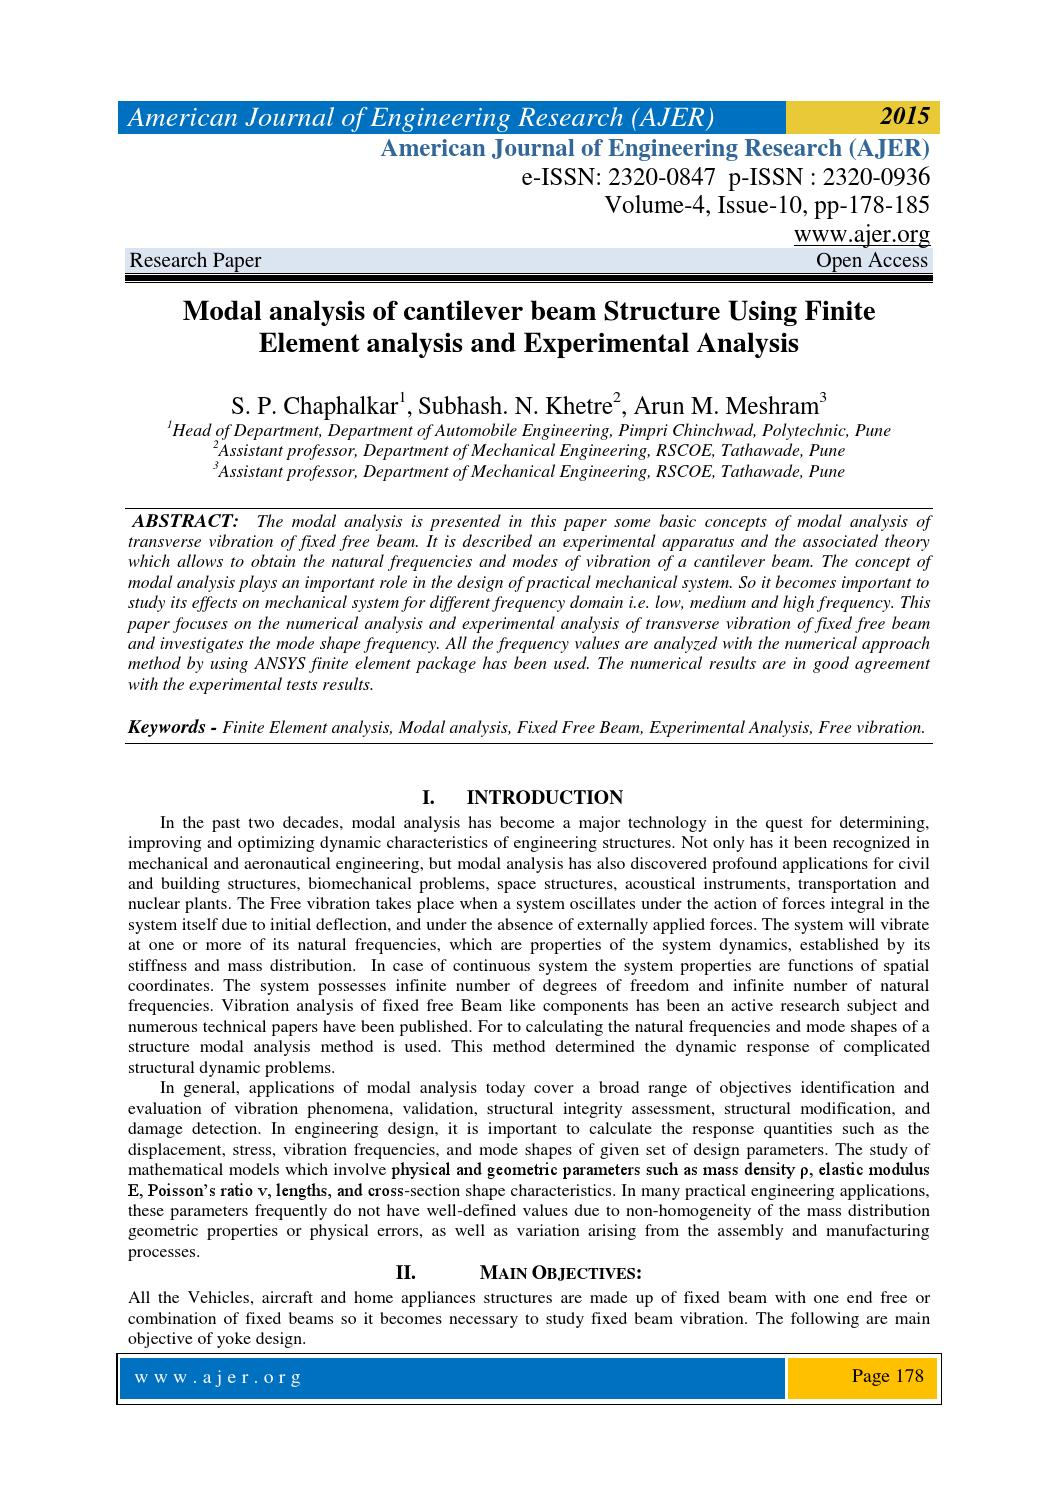 Modal analysis of cantilever beam Structure by AJER - issuu